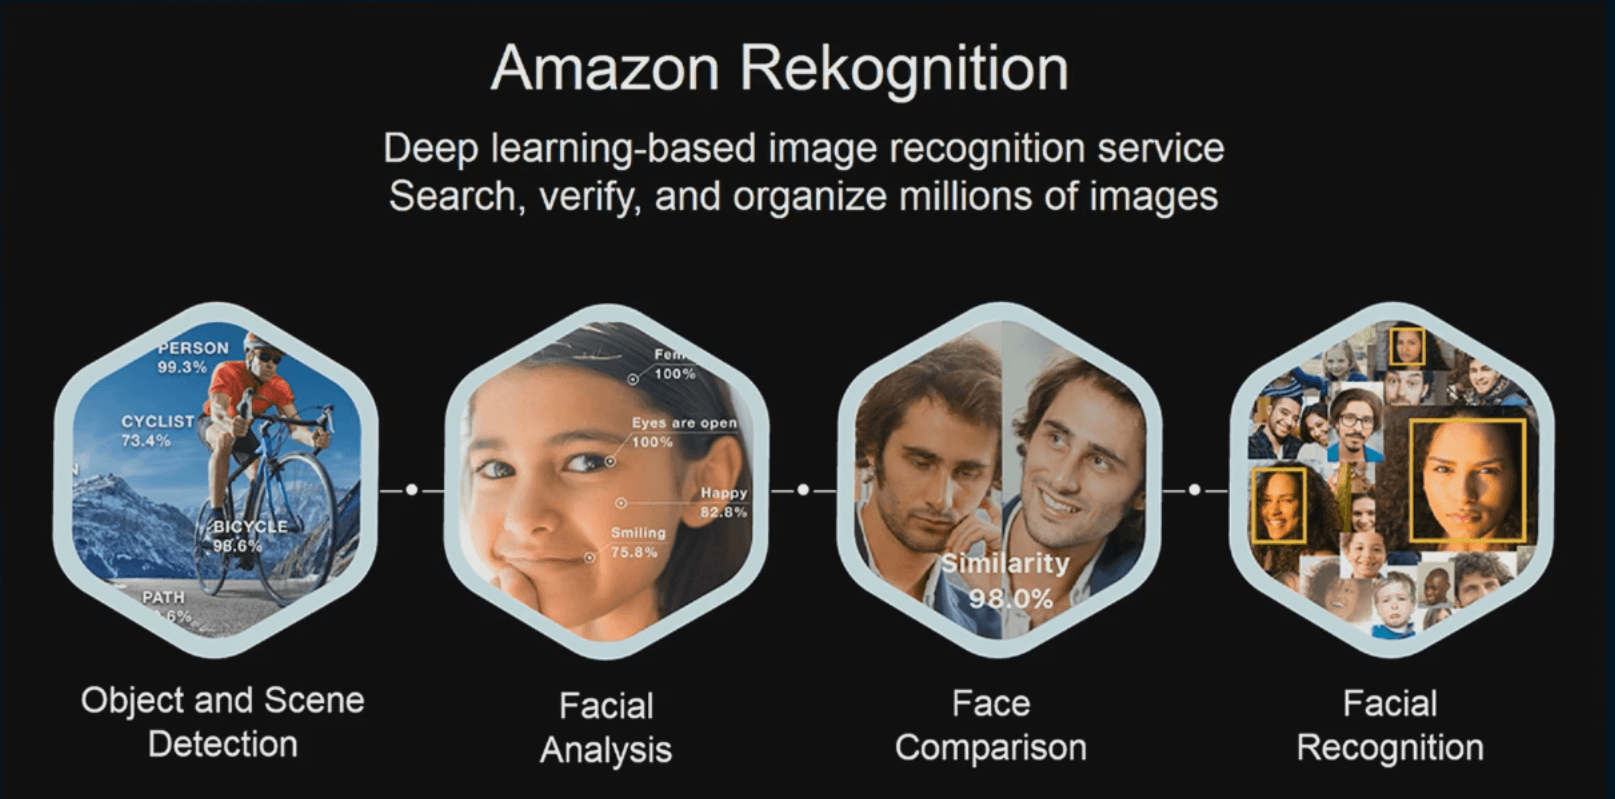 1Amazon Rekognition Service